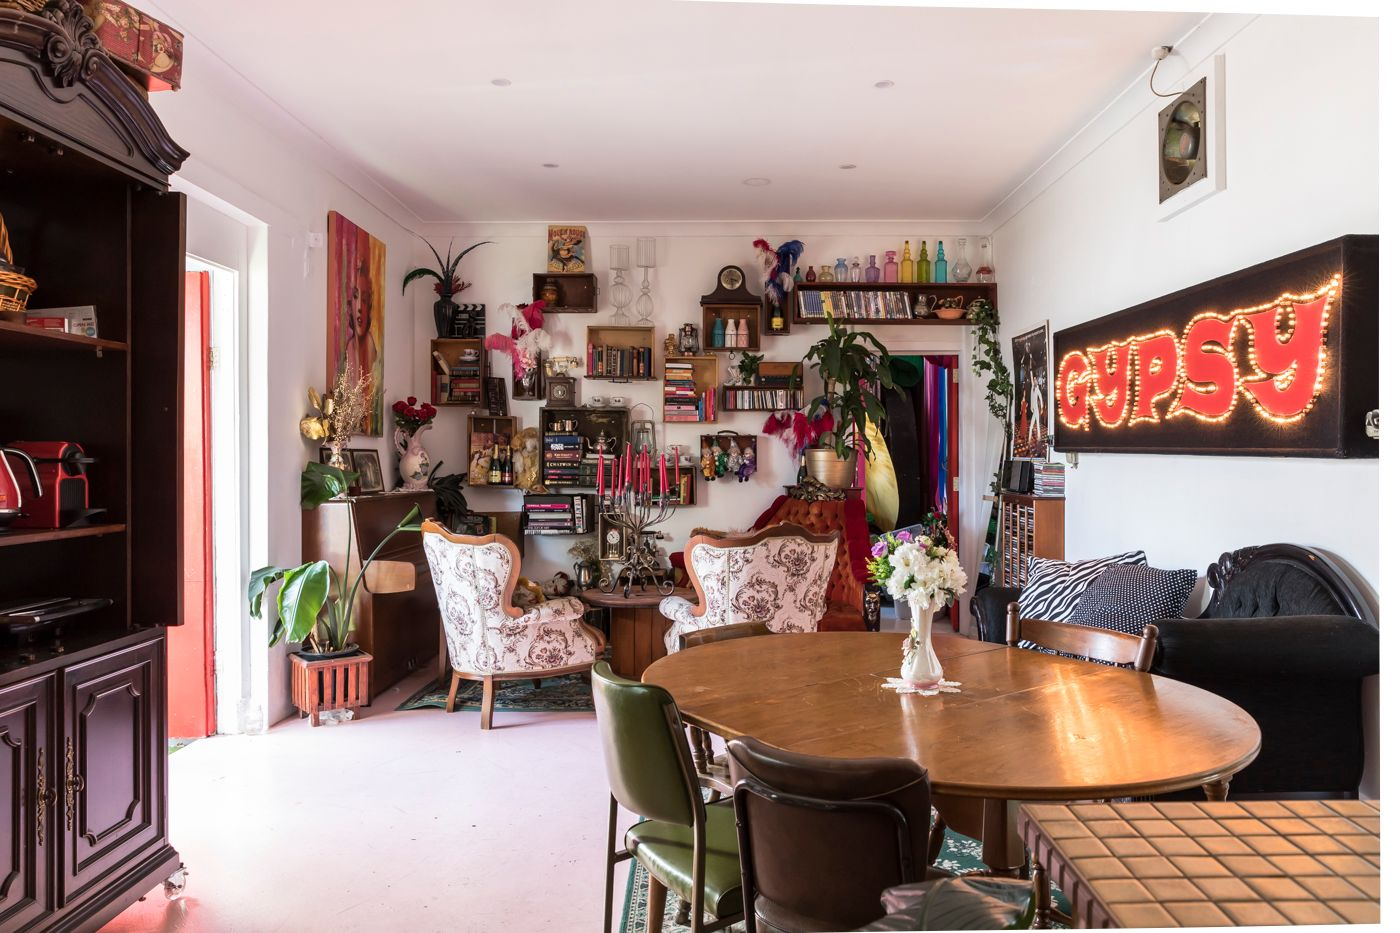 "This home is shared between Brendan De La Hay, Alicia Quinn and Roxanne Van Zyl, all performers based in Sydney. The house has ""a touch of showbiz to it,"" including the sign from the stage musical Gypsy. (Photo by Pablo Veiga)"